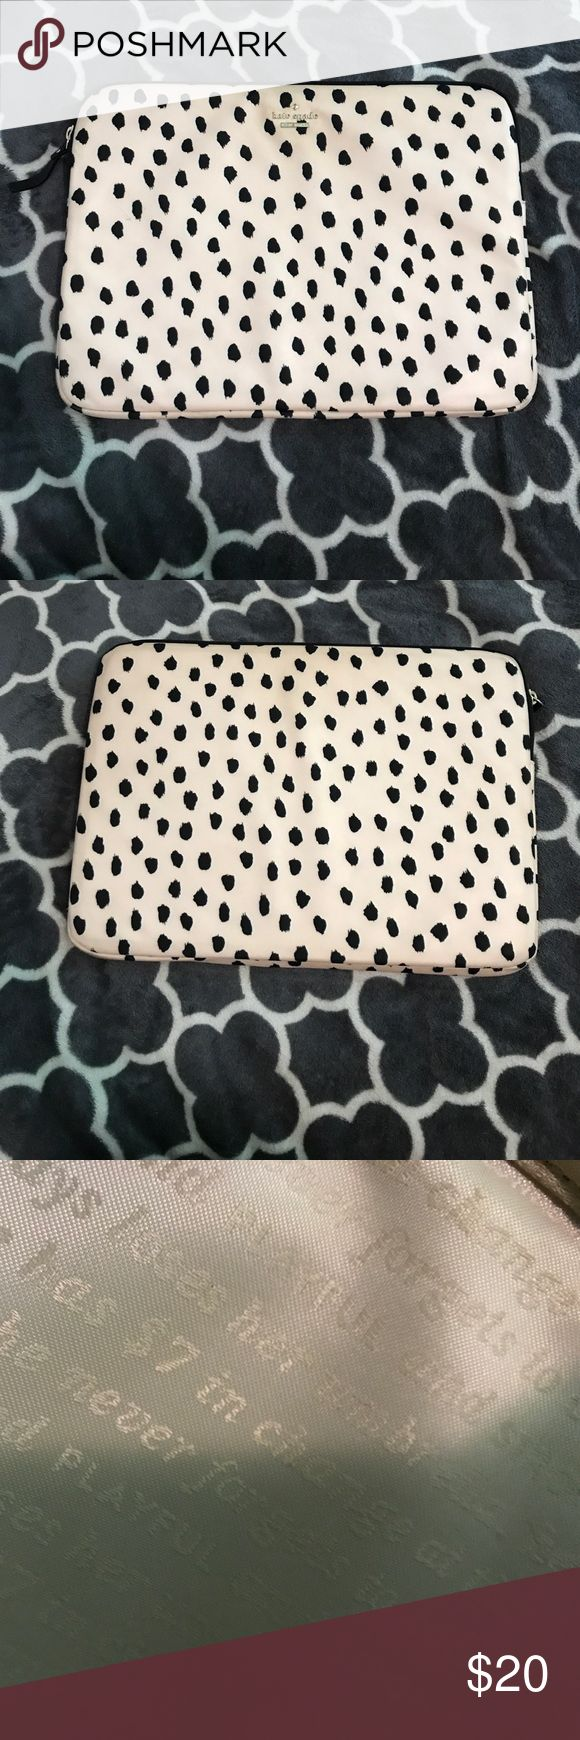 """Kate spade laptop case Kate spade laptop sleeve in great condition super cute pattern and it really padded so it'll keep you laptop case. Fits my 13"""" MacBook Pro kate spade Bags Laptop Bags"""